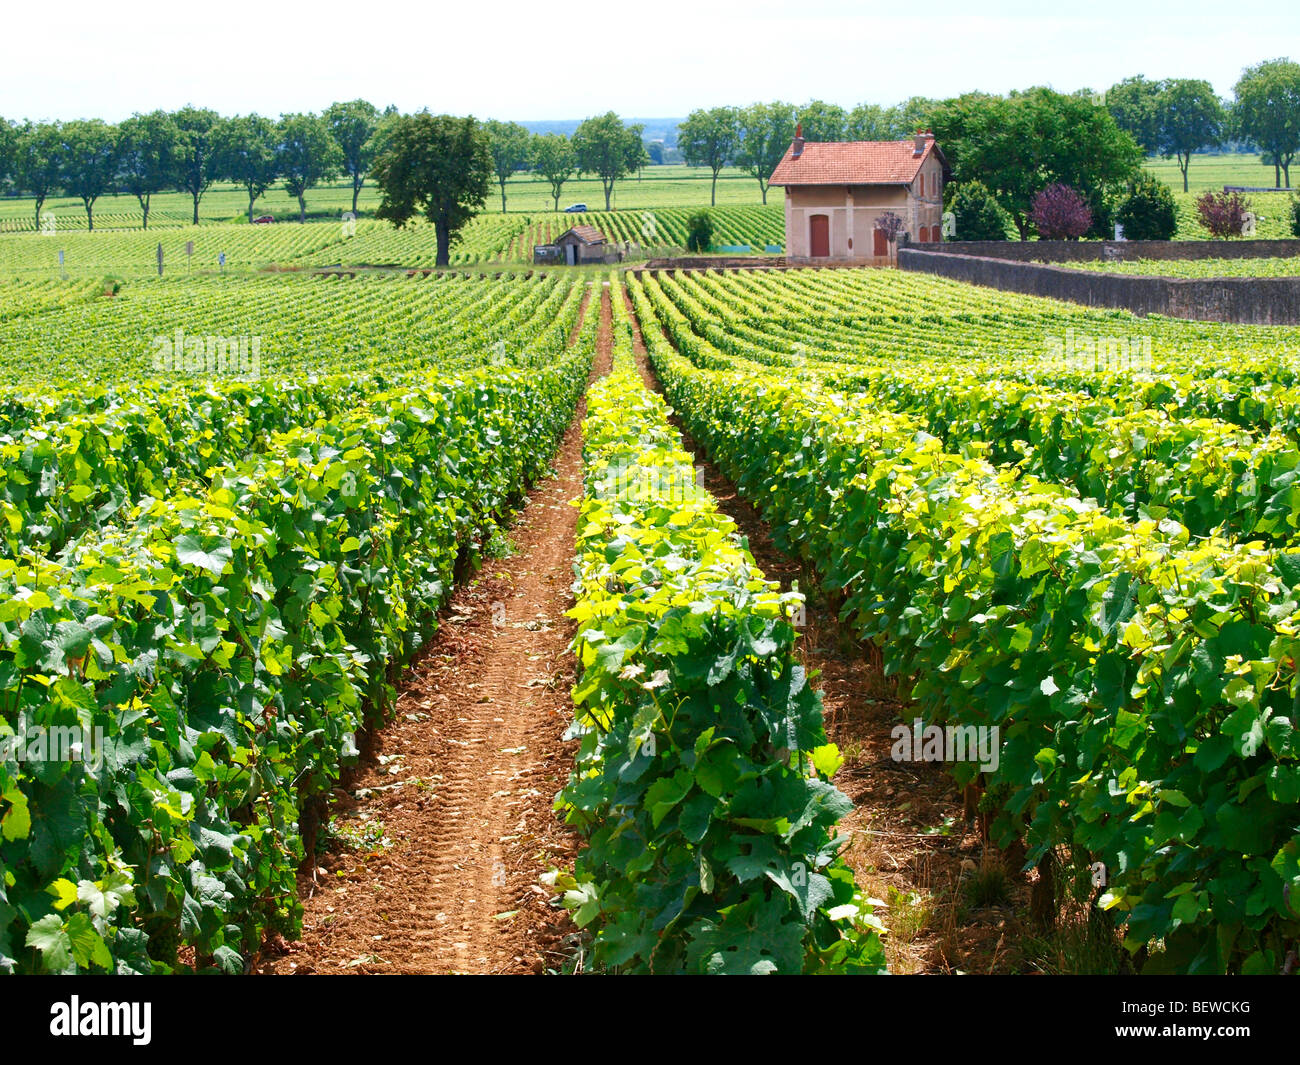 Vineyard with house in the background, Beaune, Burgundy, France - Stock Image